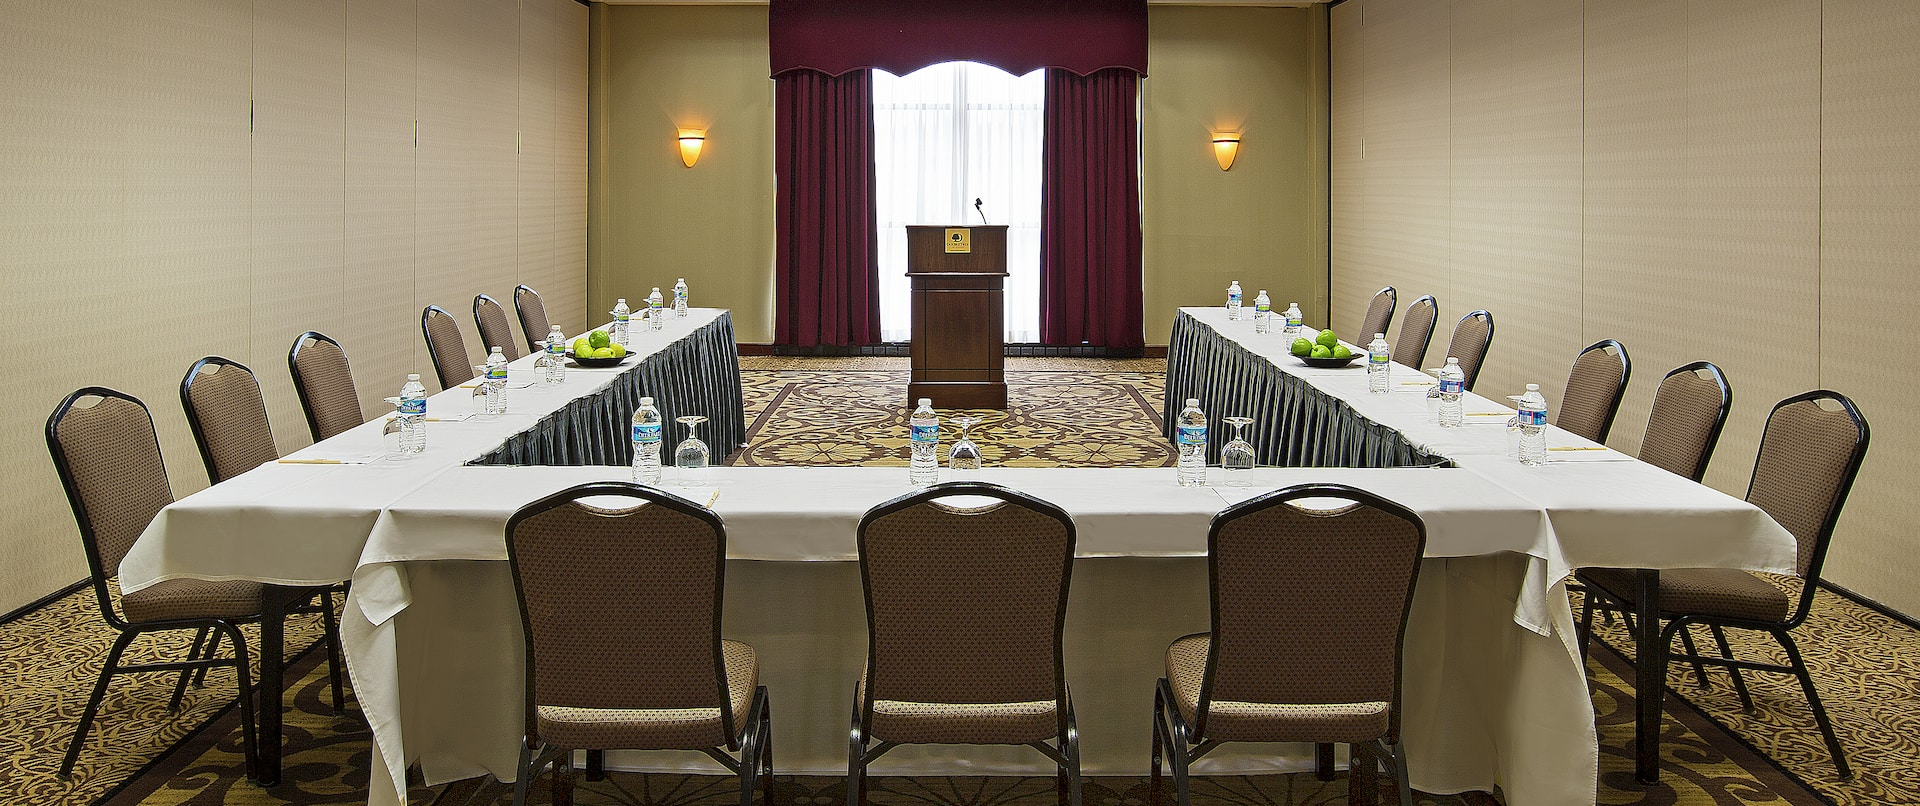 Meeting Room With U-Shaped Table and Podium